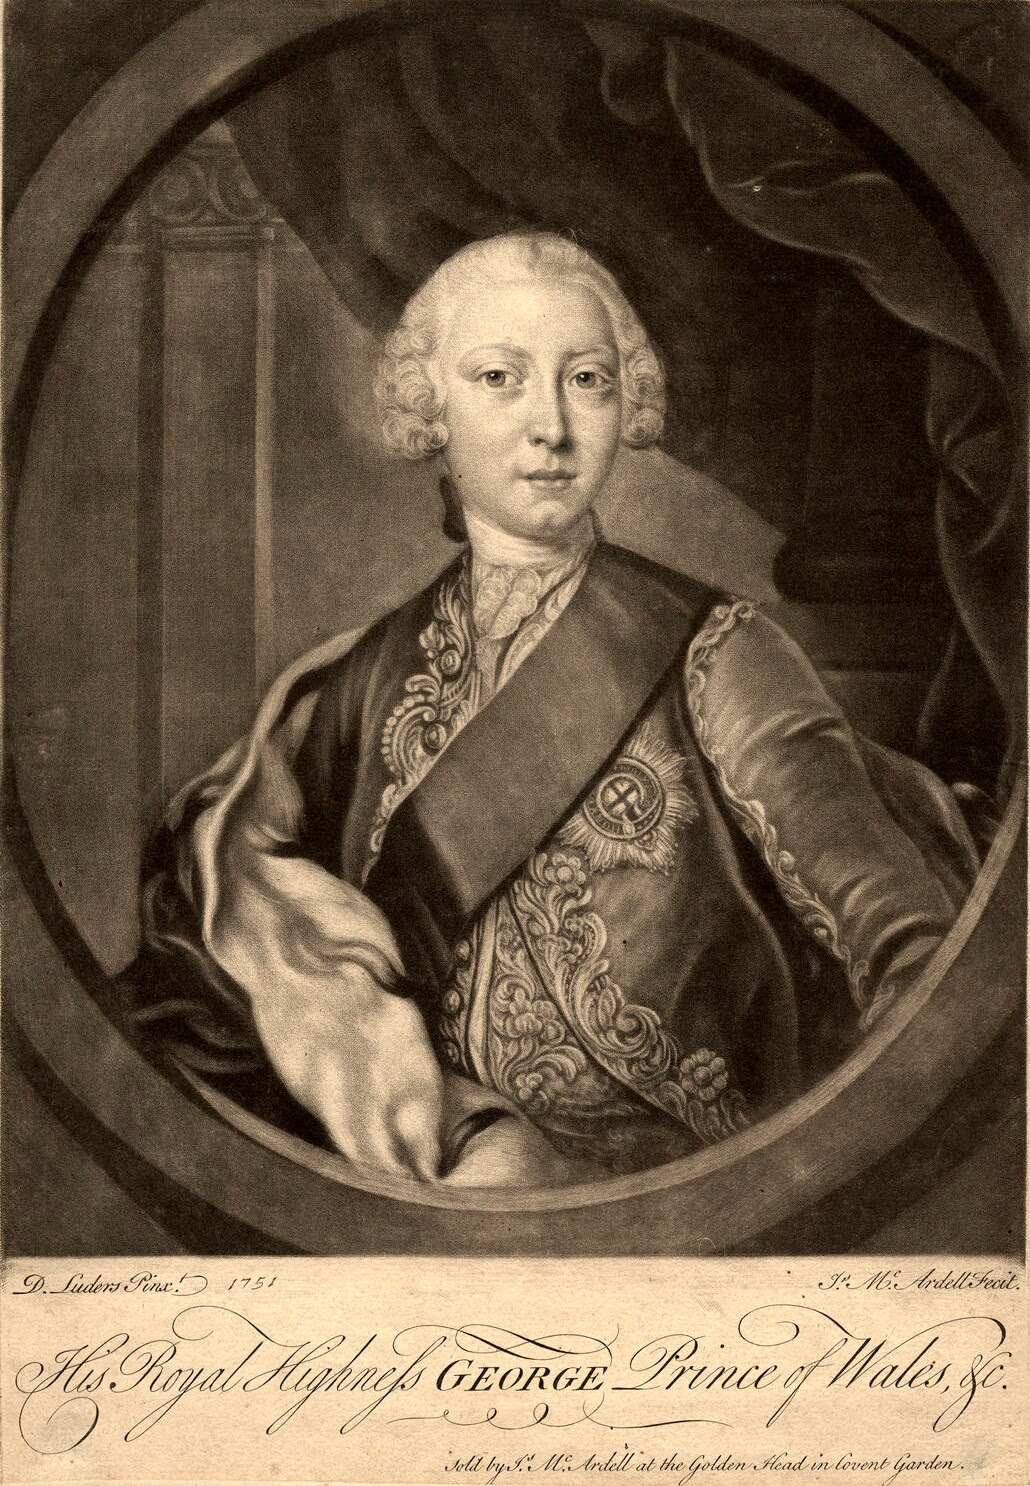 James Macardell/David Lüders: George III of the United Kingdom while Prince of Wales